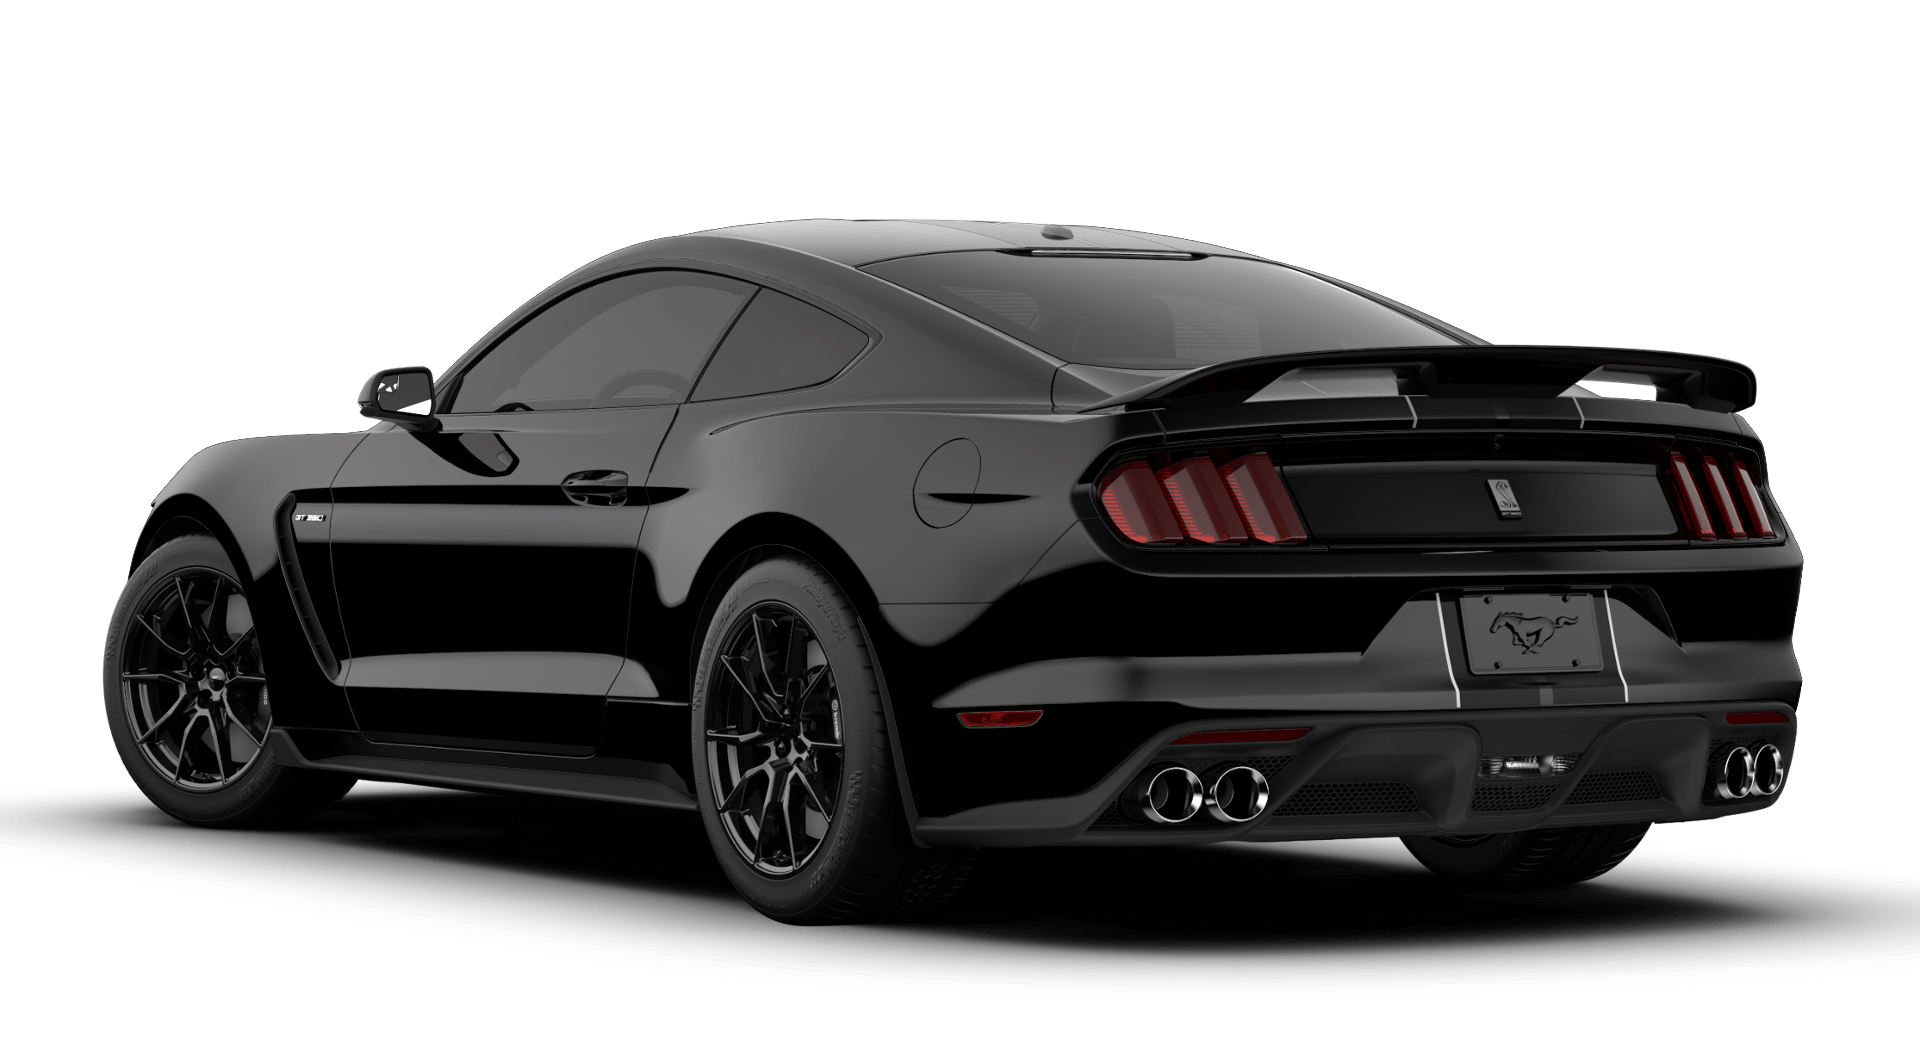 2019 Ford Mustang Build Price Ford Mustang Ford Mustang Gt